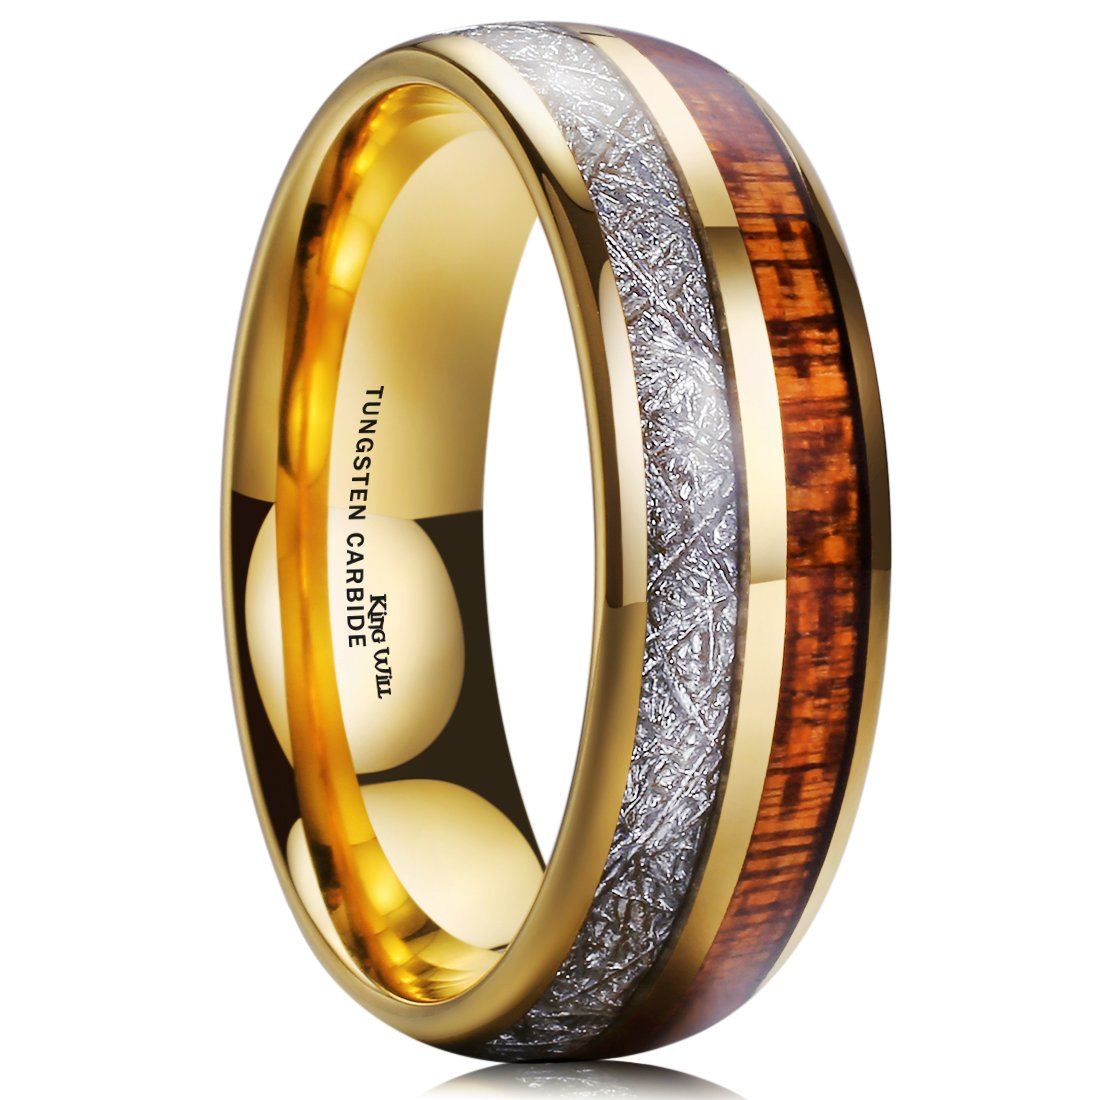 King Will Meteor Men Wedding Band Gold Plated Domed Tungsten Ring 8mm Imitated Meteorite Koa Wood Inlay Fort Fit Amazon: Wooden Inlay Wedding Band At Websimilar.org